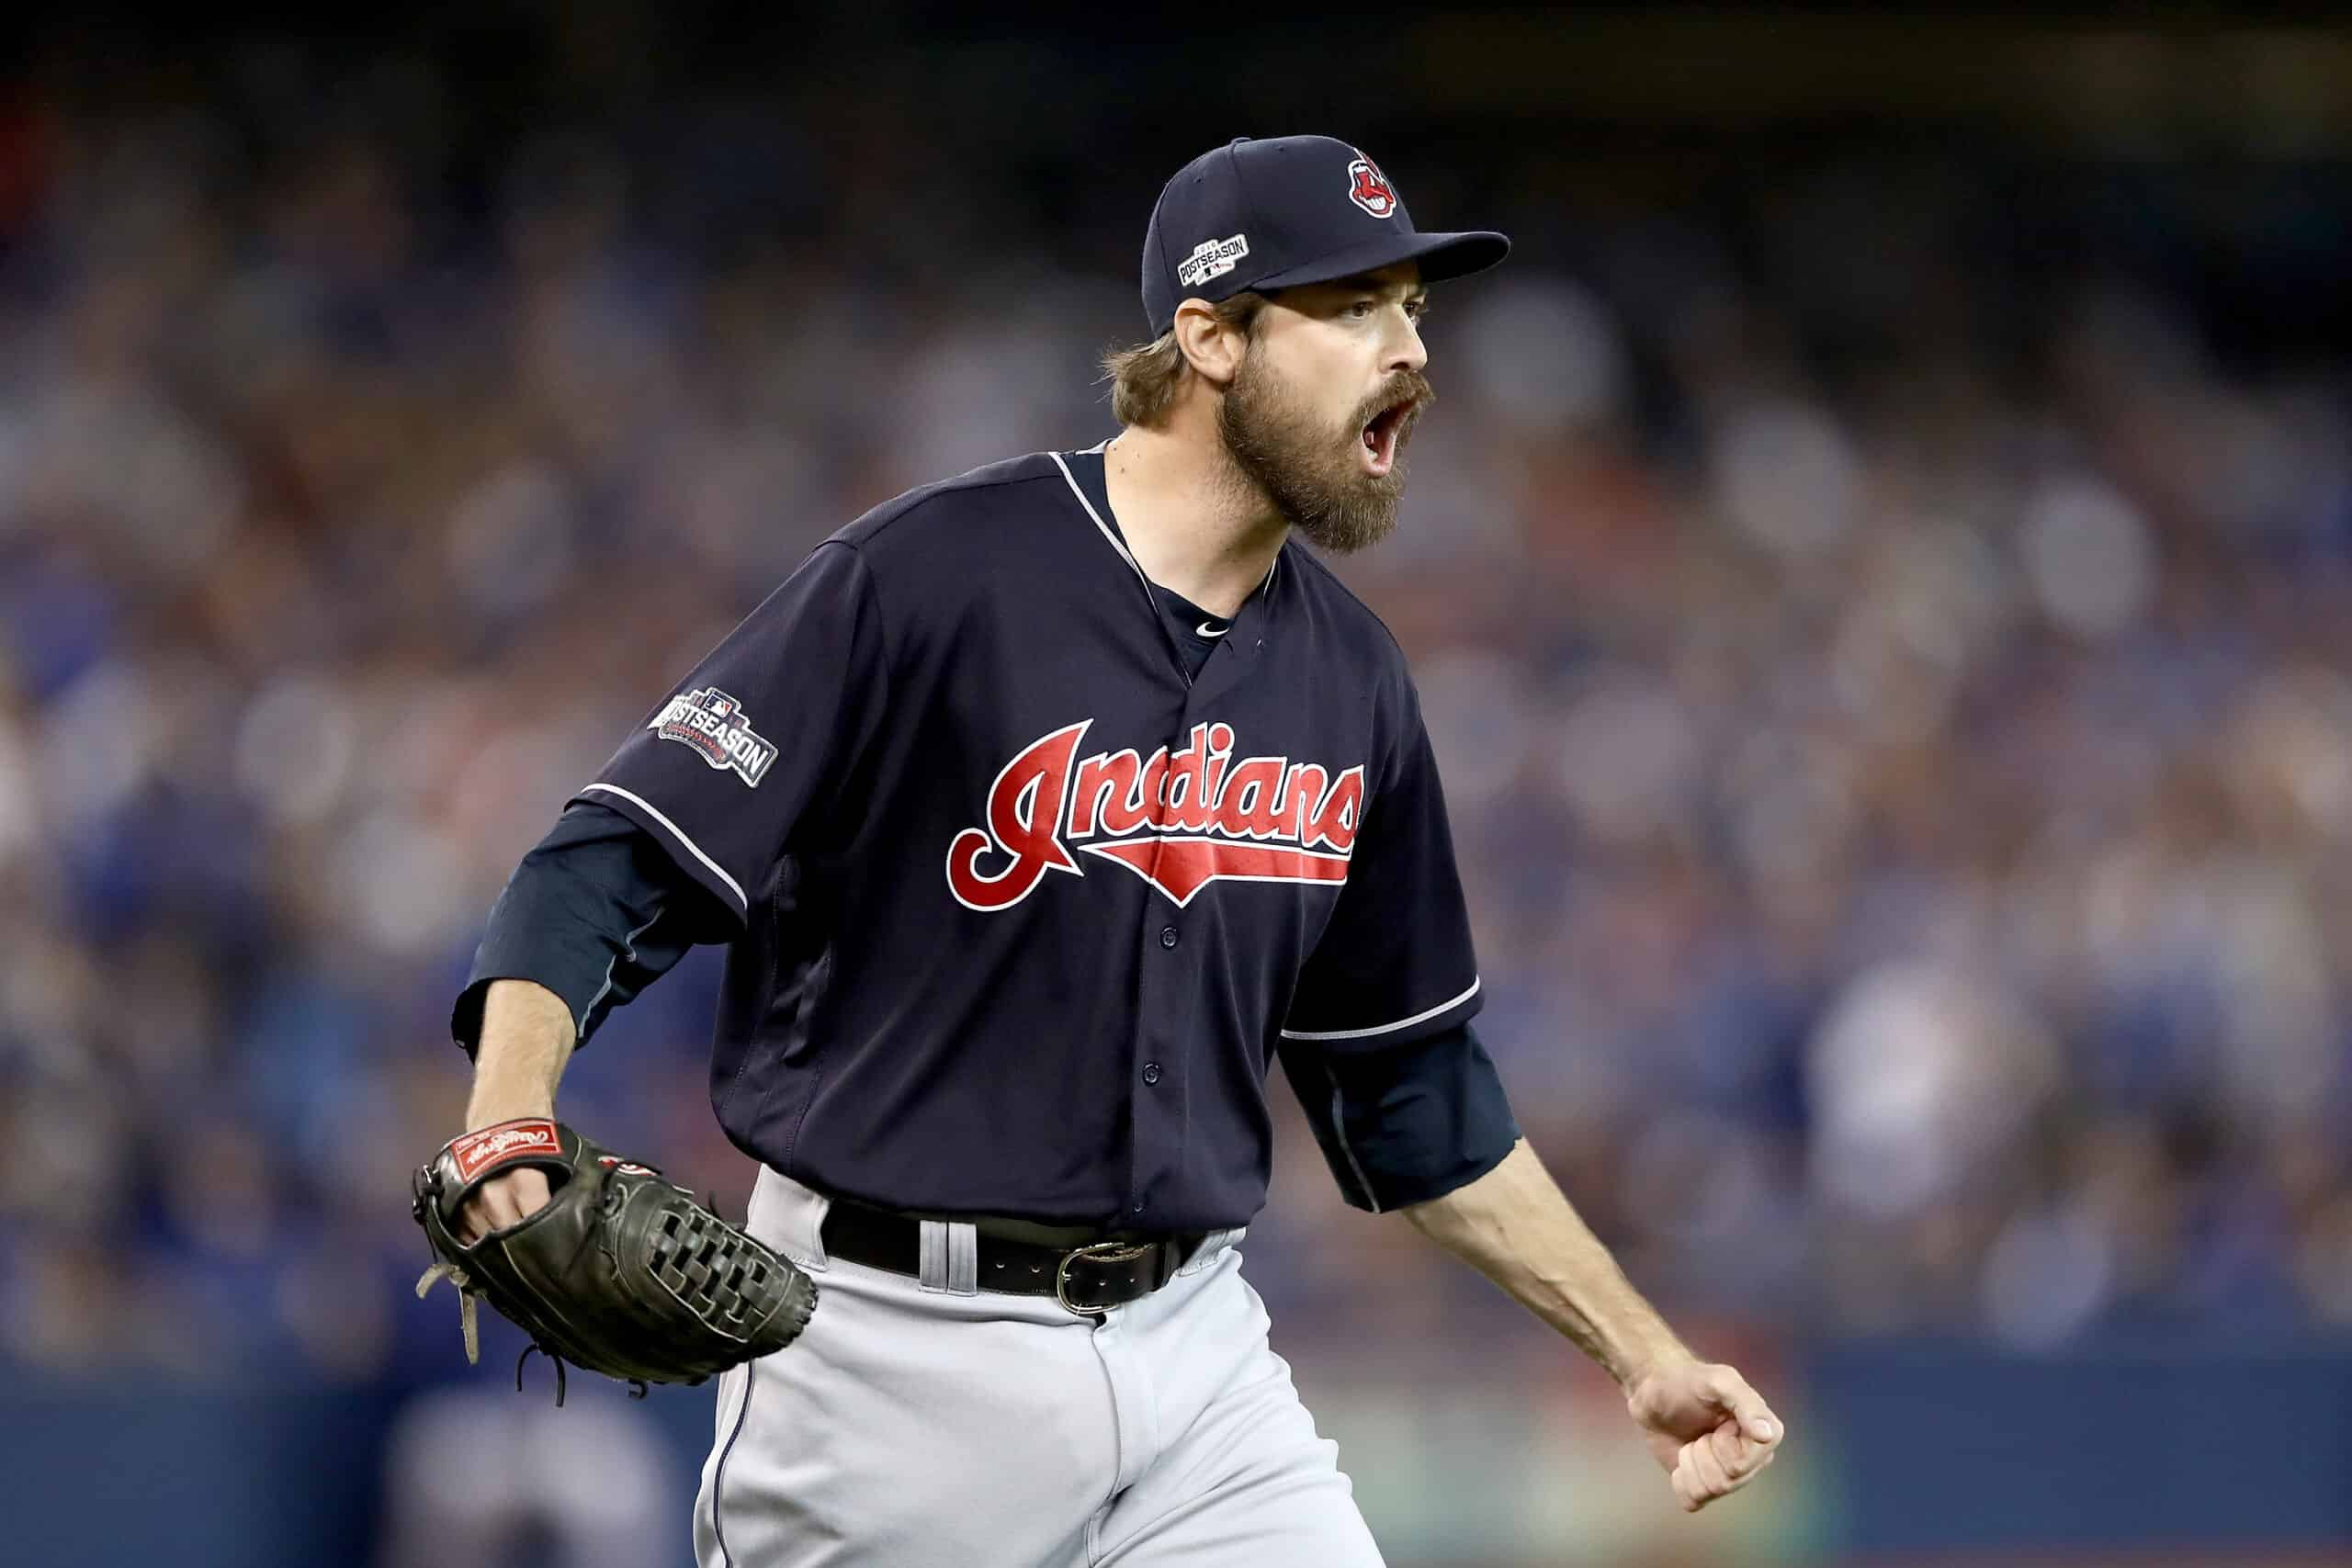 Andrew Miller #24 of the Cleveland Indians reacts after closing out the sixth inning against the Toronto Blue Jays during game five of the American League Championship Series at Rogers Centre on October 19, 2016 in Toronto, Canada.